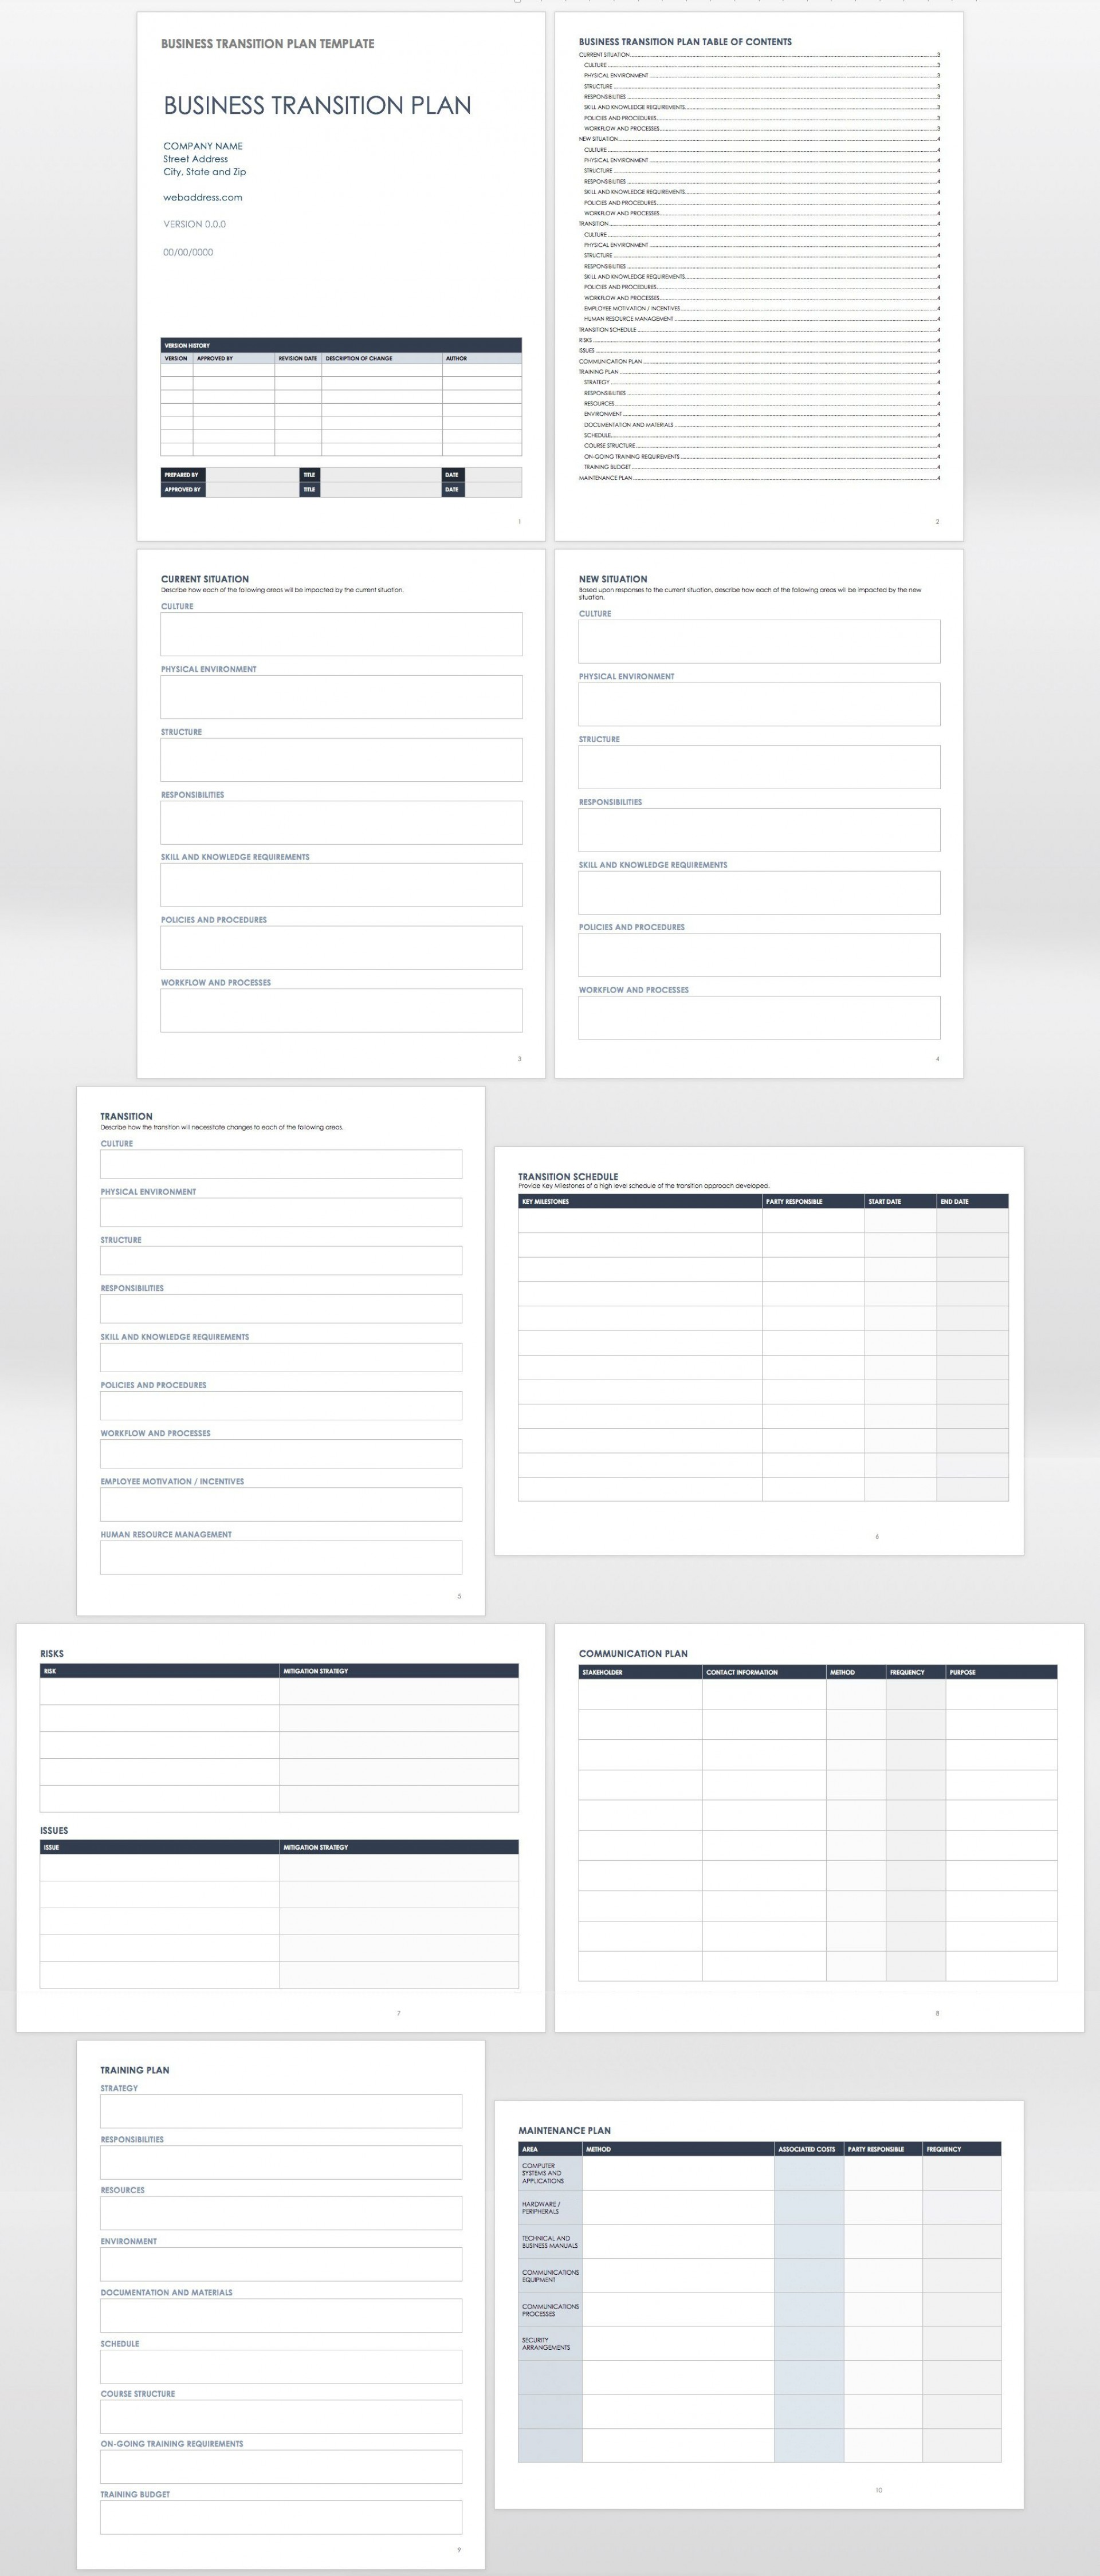 002 Top Employee Transition Plan Template Example  For Leaving Job Excel Word Internal1920